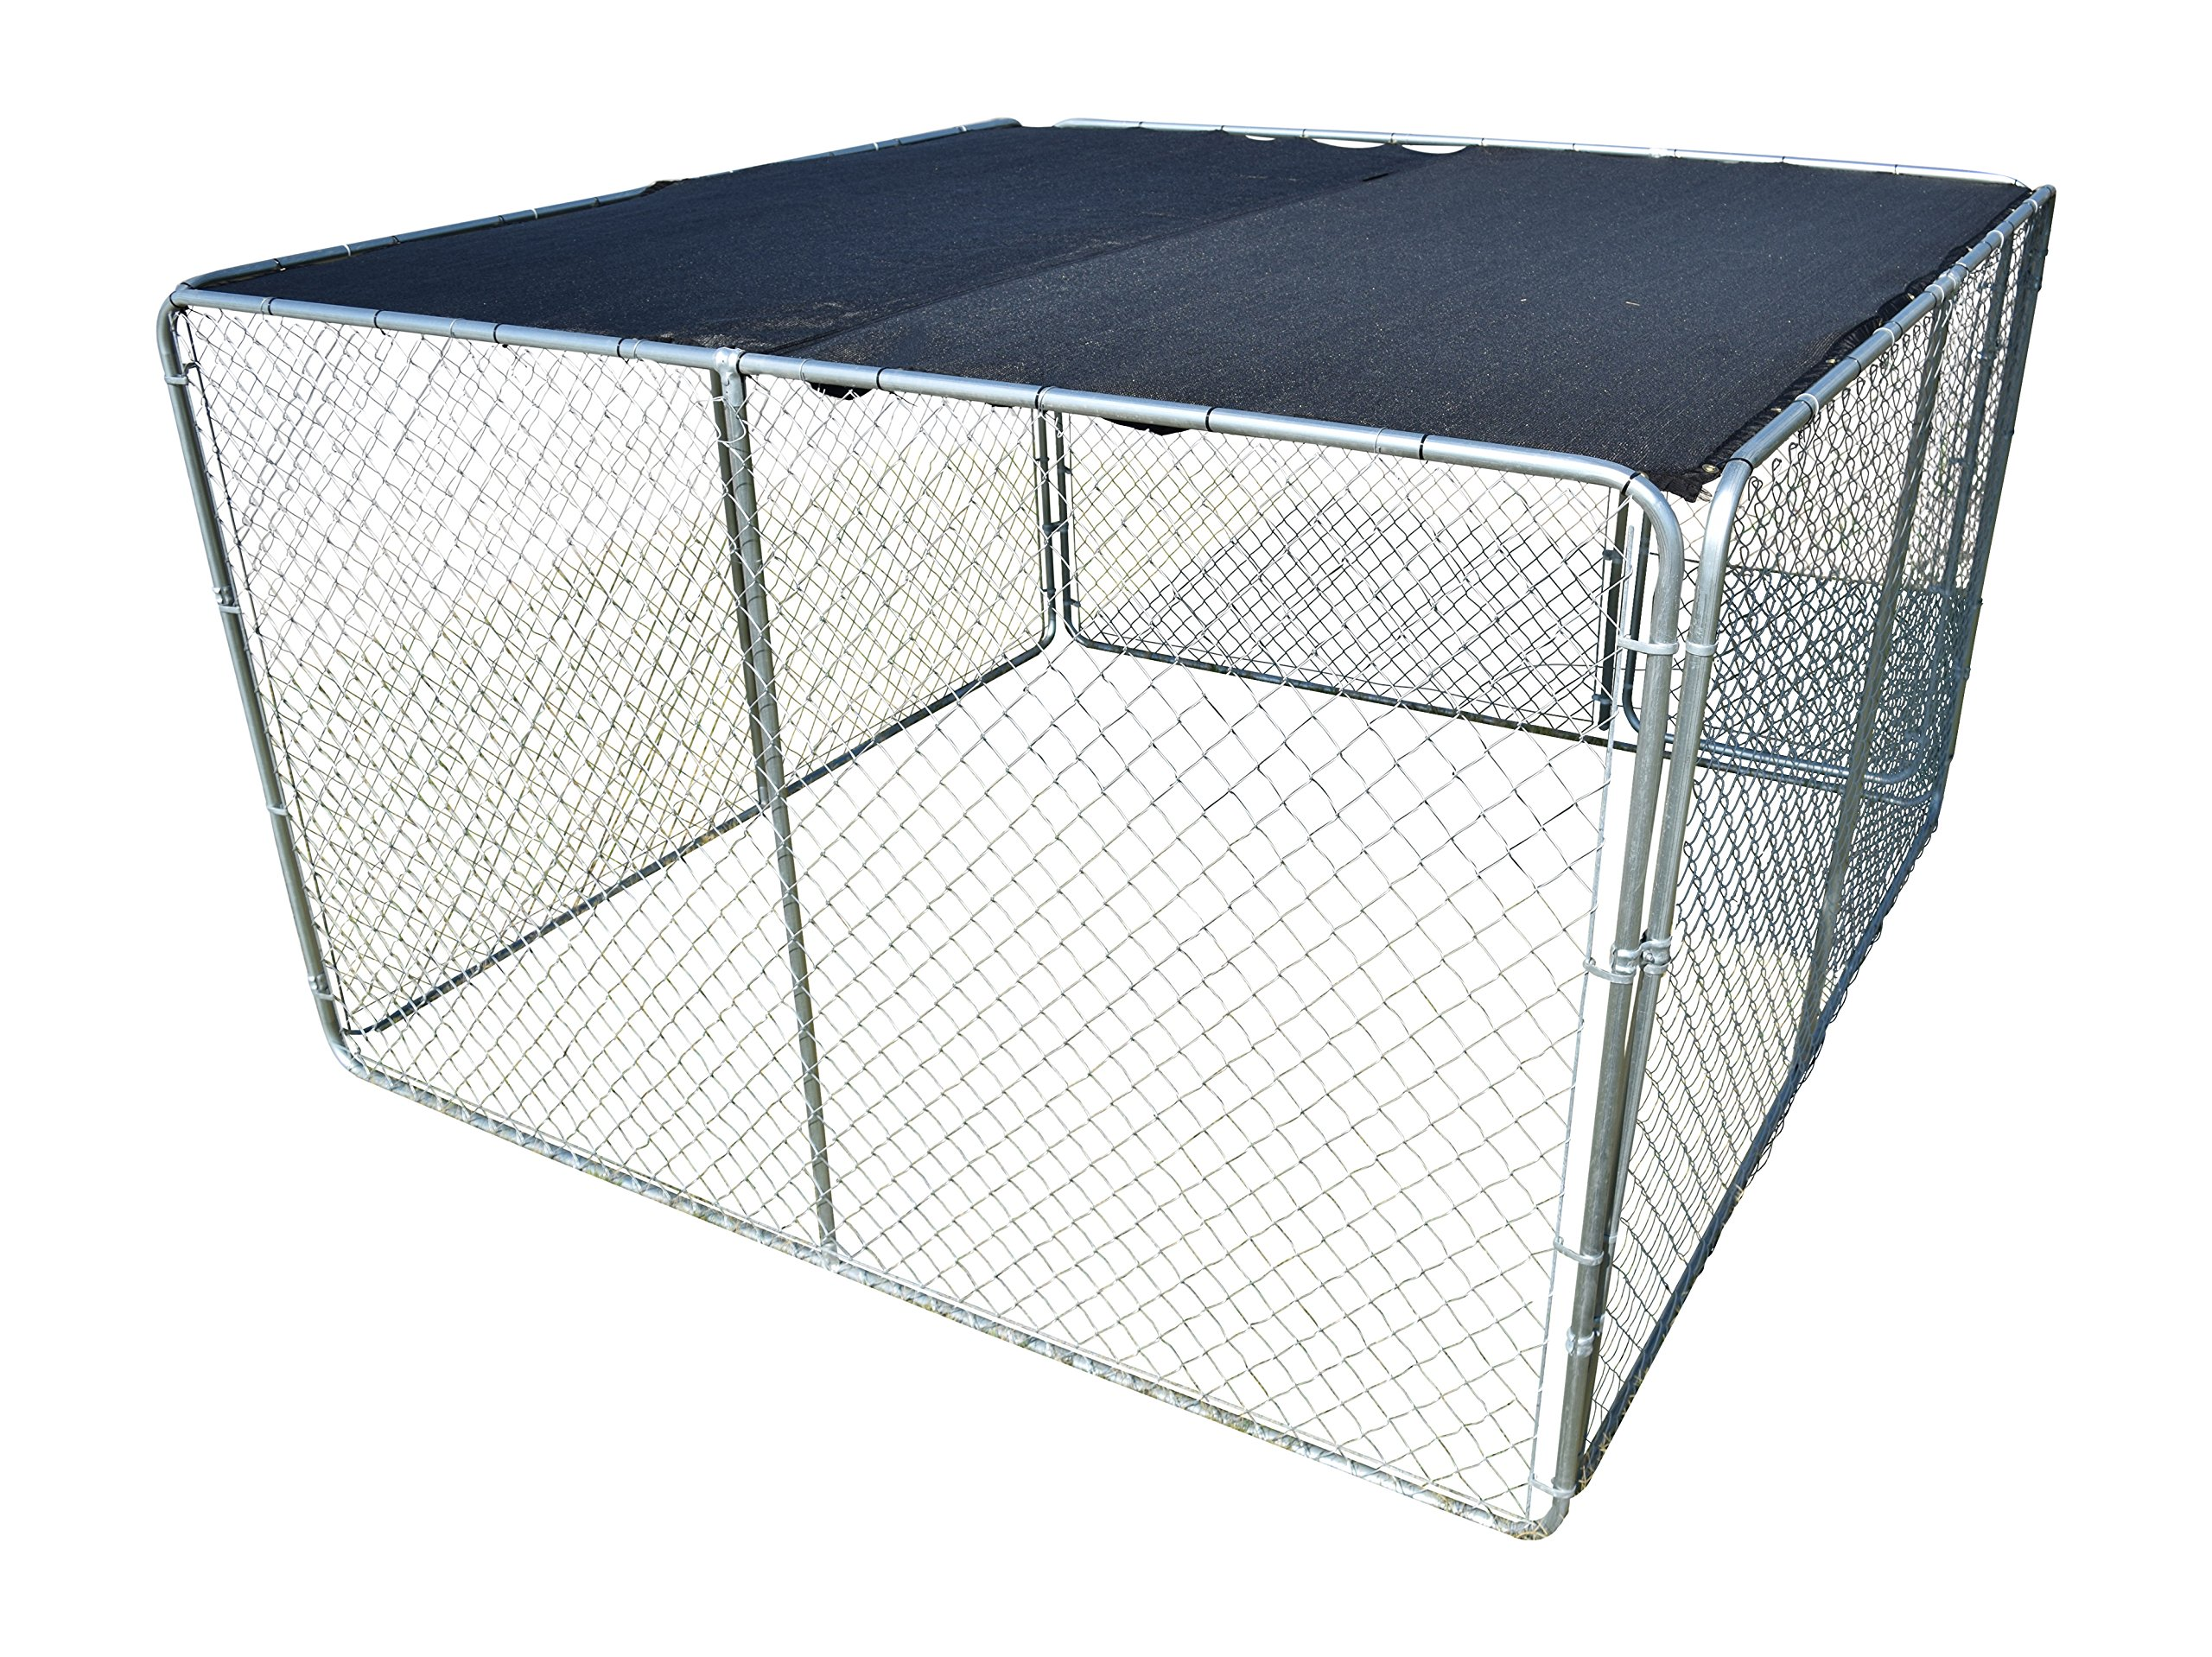 Nickanny's UV Rated 85% Block Cover For Dog Kennel Sun Block Shade Top with Grommets and Cable Ties For Installation (10 x 10, Black)